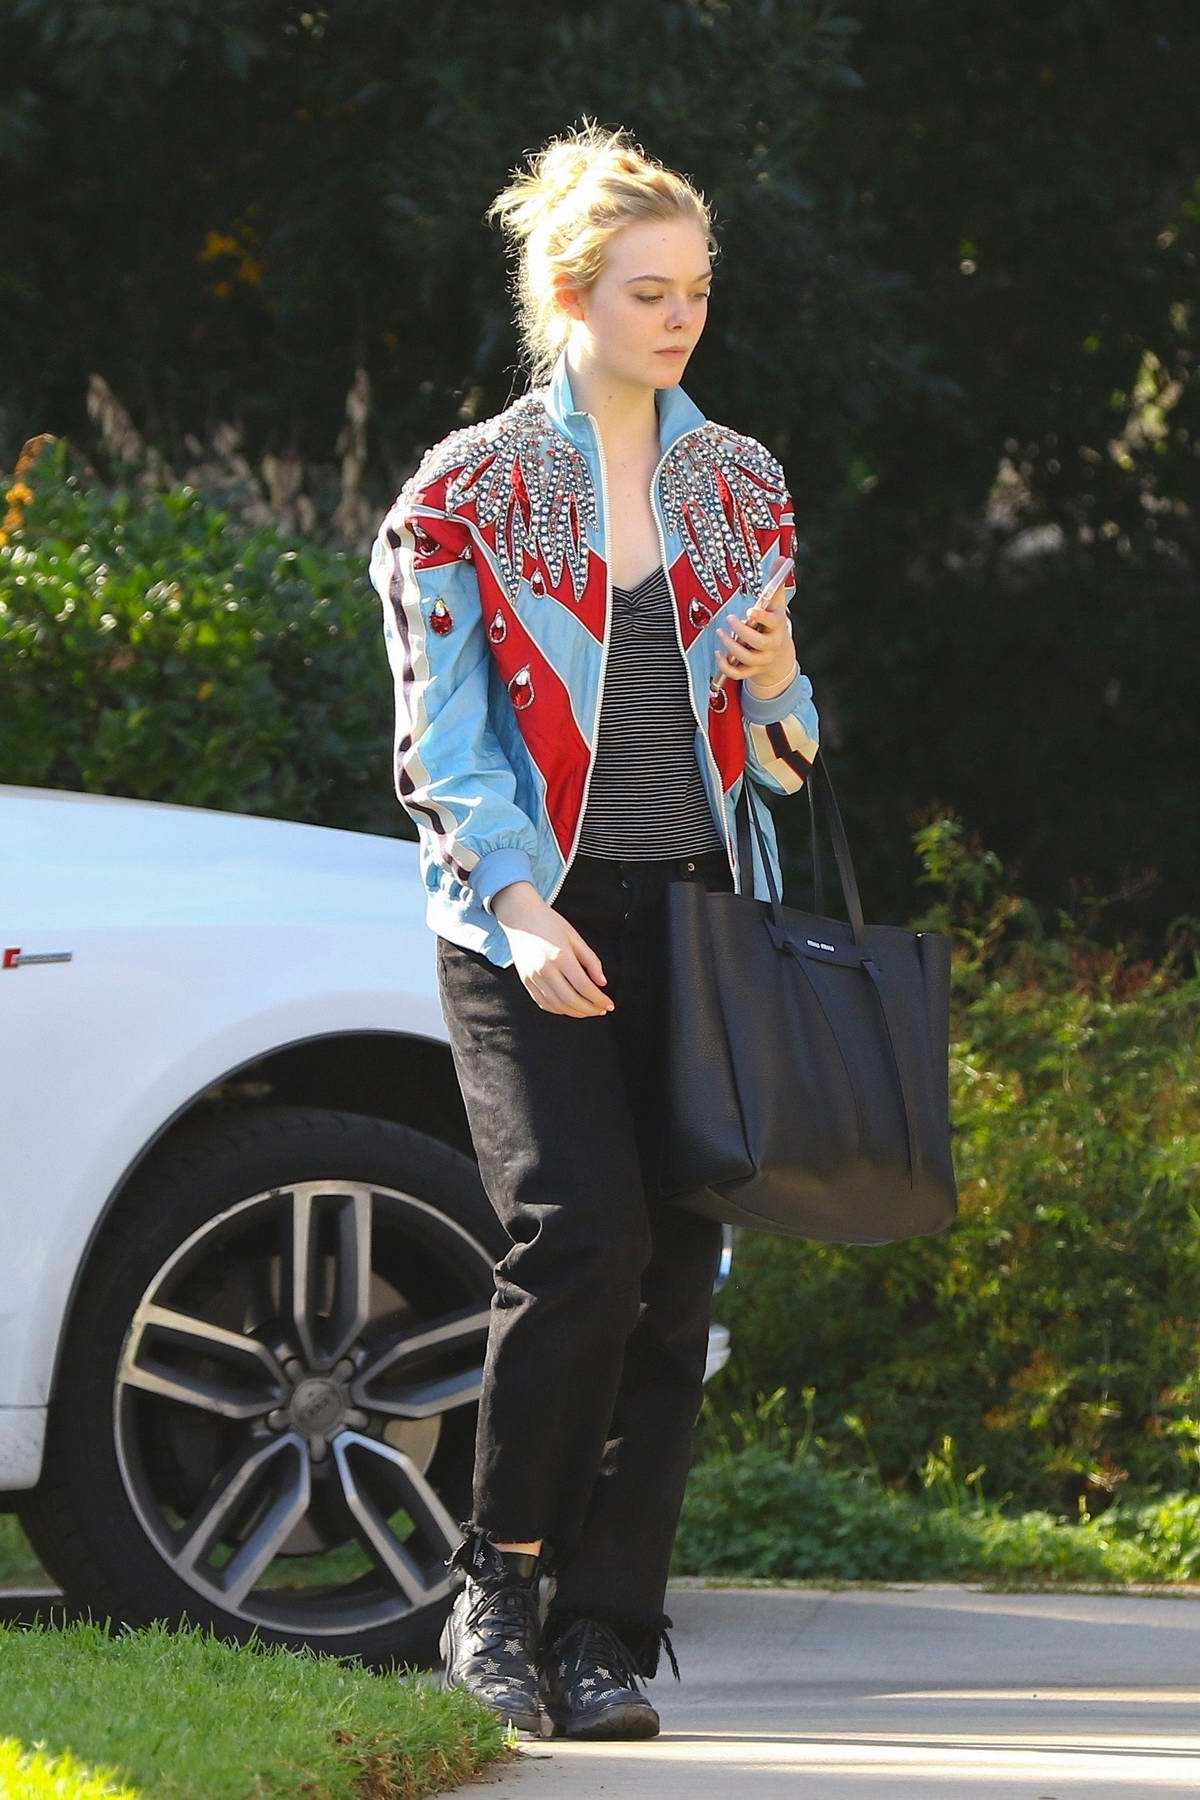 Elle Fanning sports a blue and red sequined jacket while she visit to the studio with her mother in Burbank, California